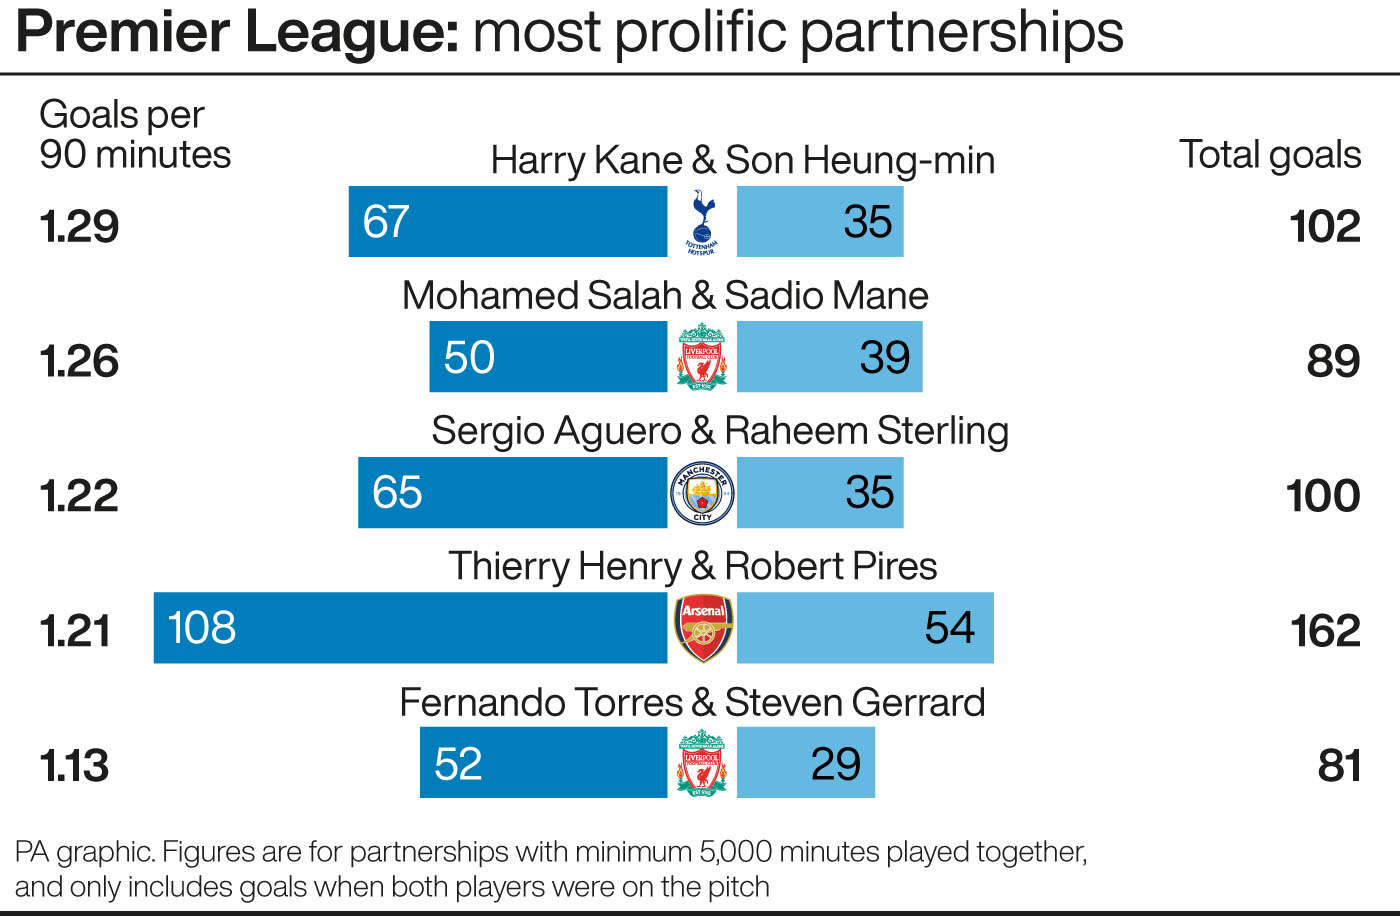 Premier League: most prolific partnerships